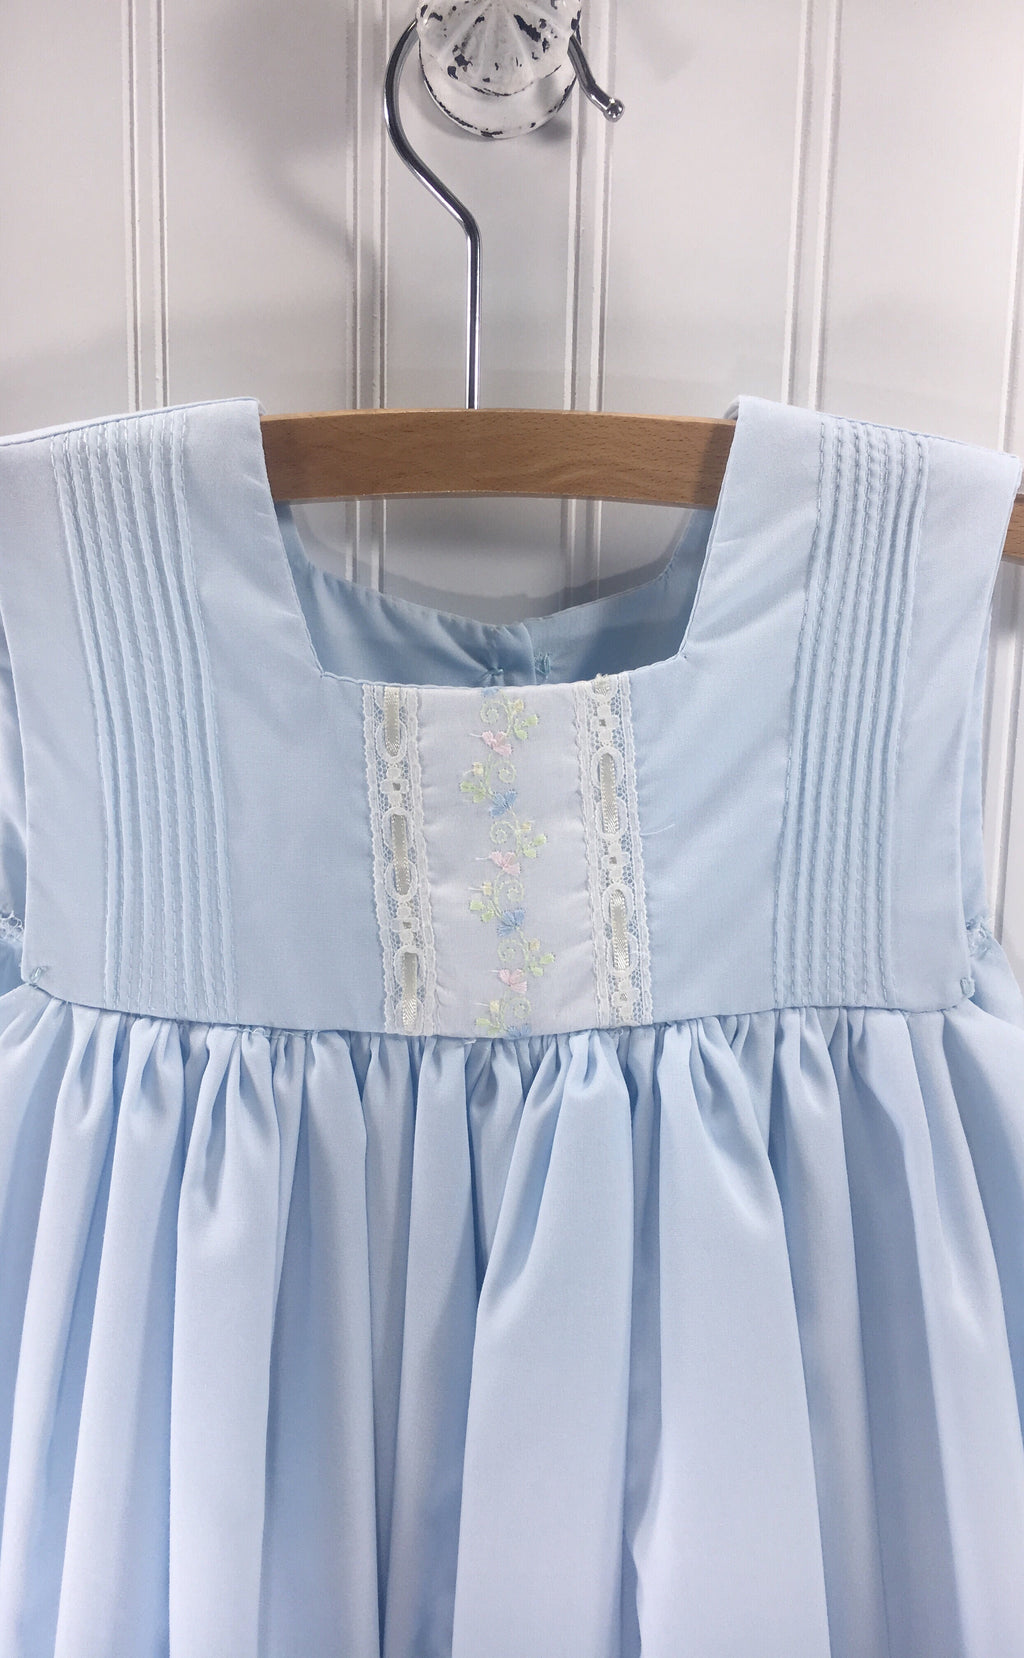 Heirloom Sleeveless Blue Dress with Floral Insert - Born Childrens Boutique